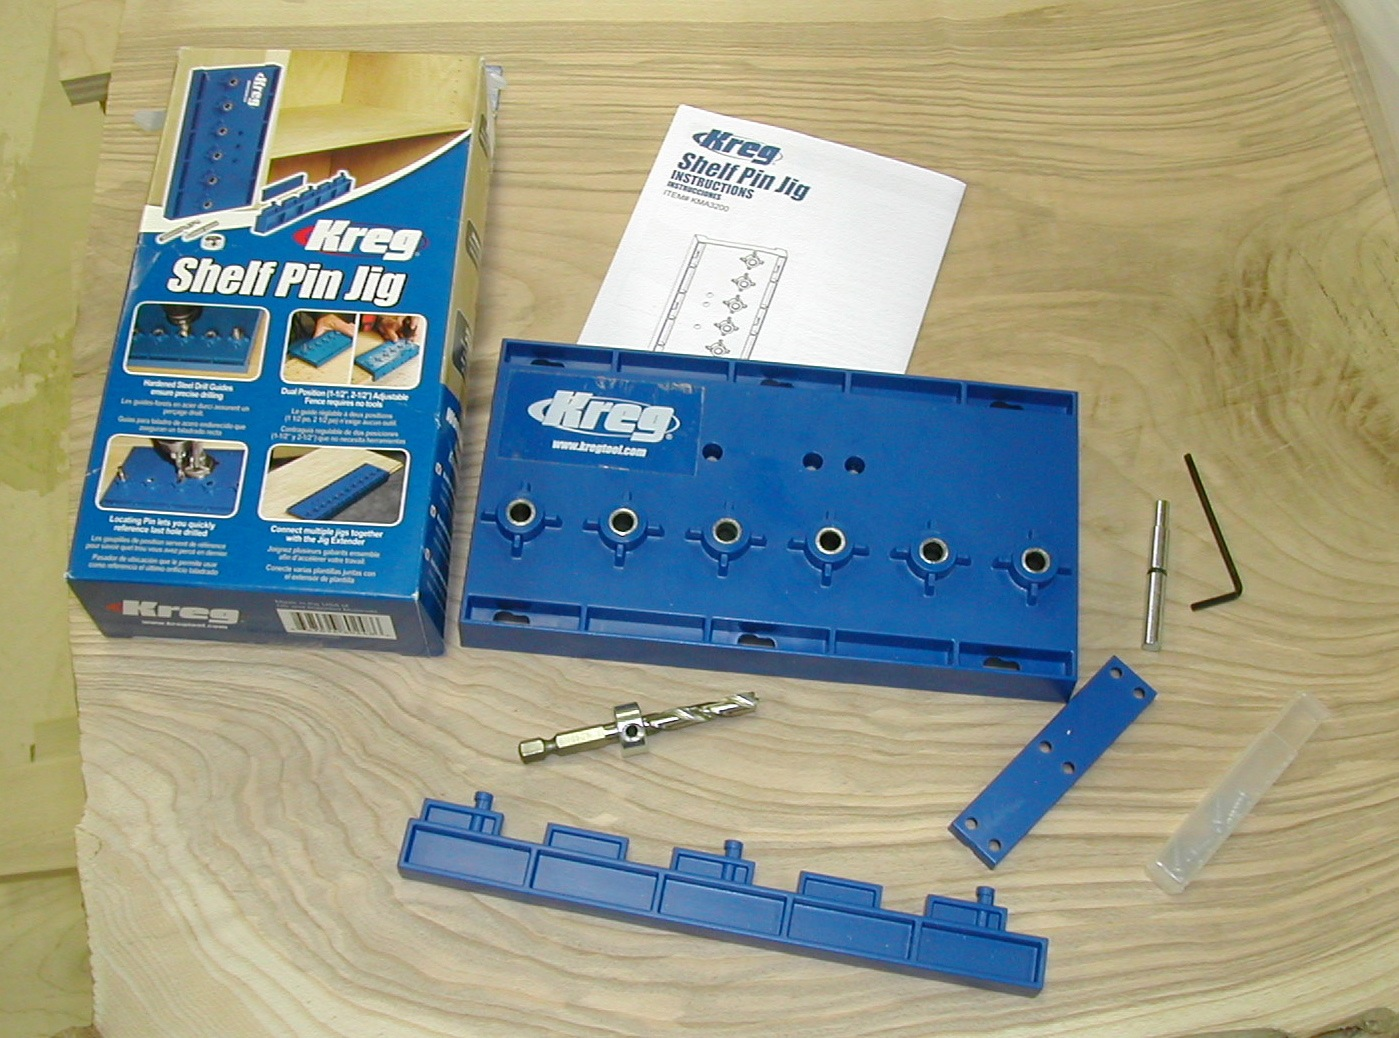 Kreg Shelf Pin Drilling Jig | The Down To Earth Woodworker